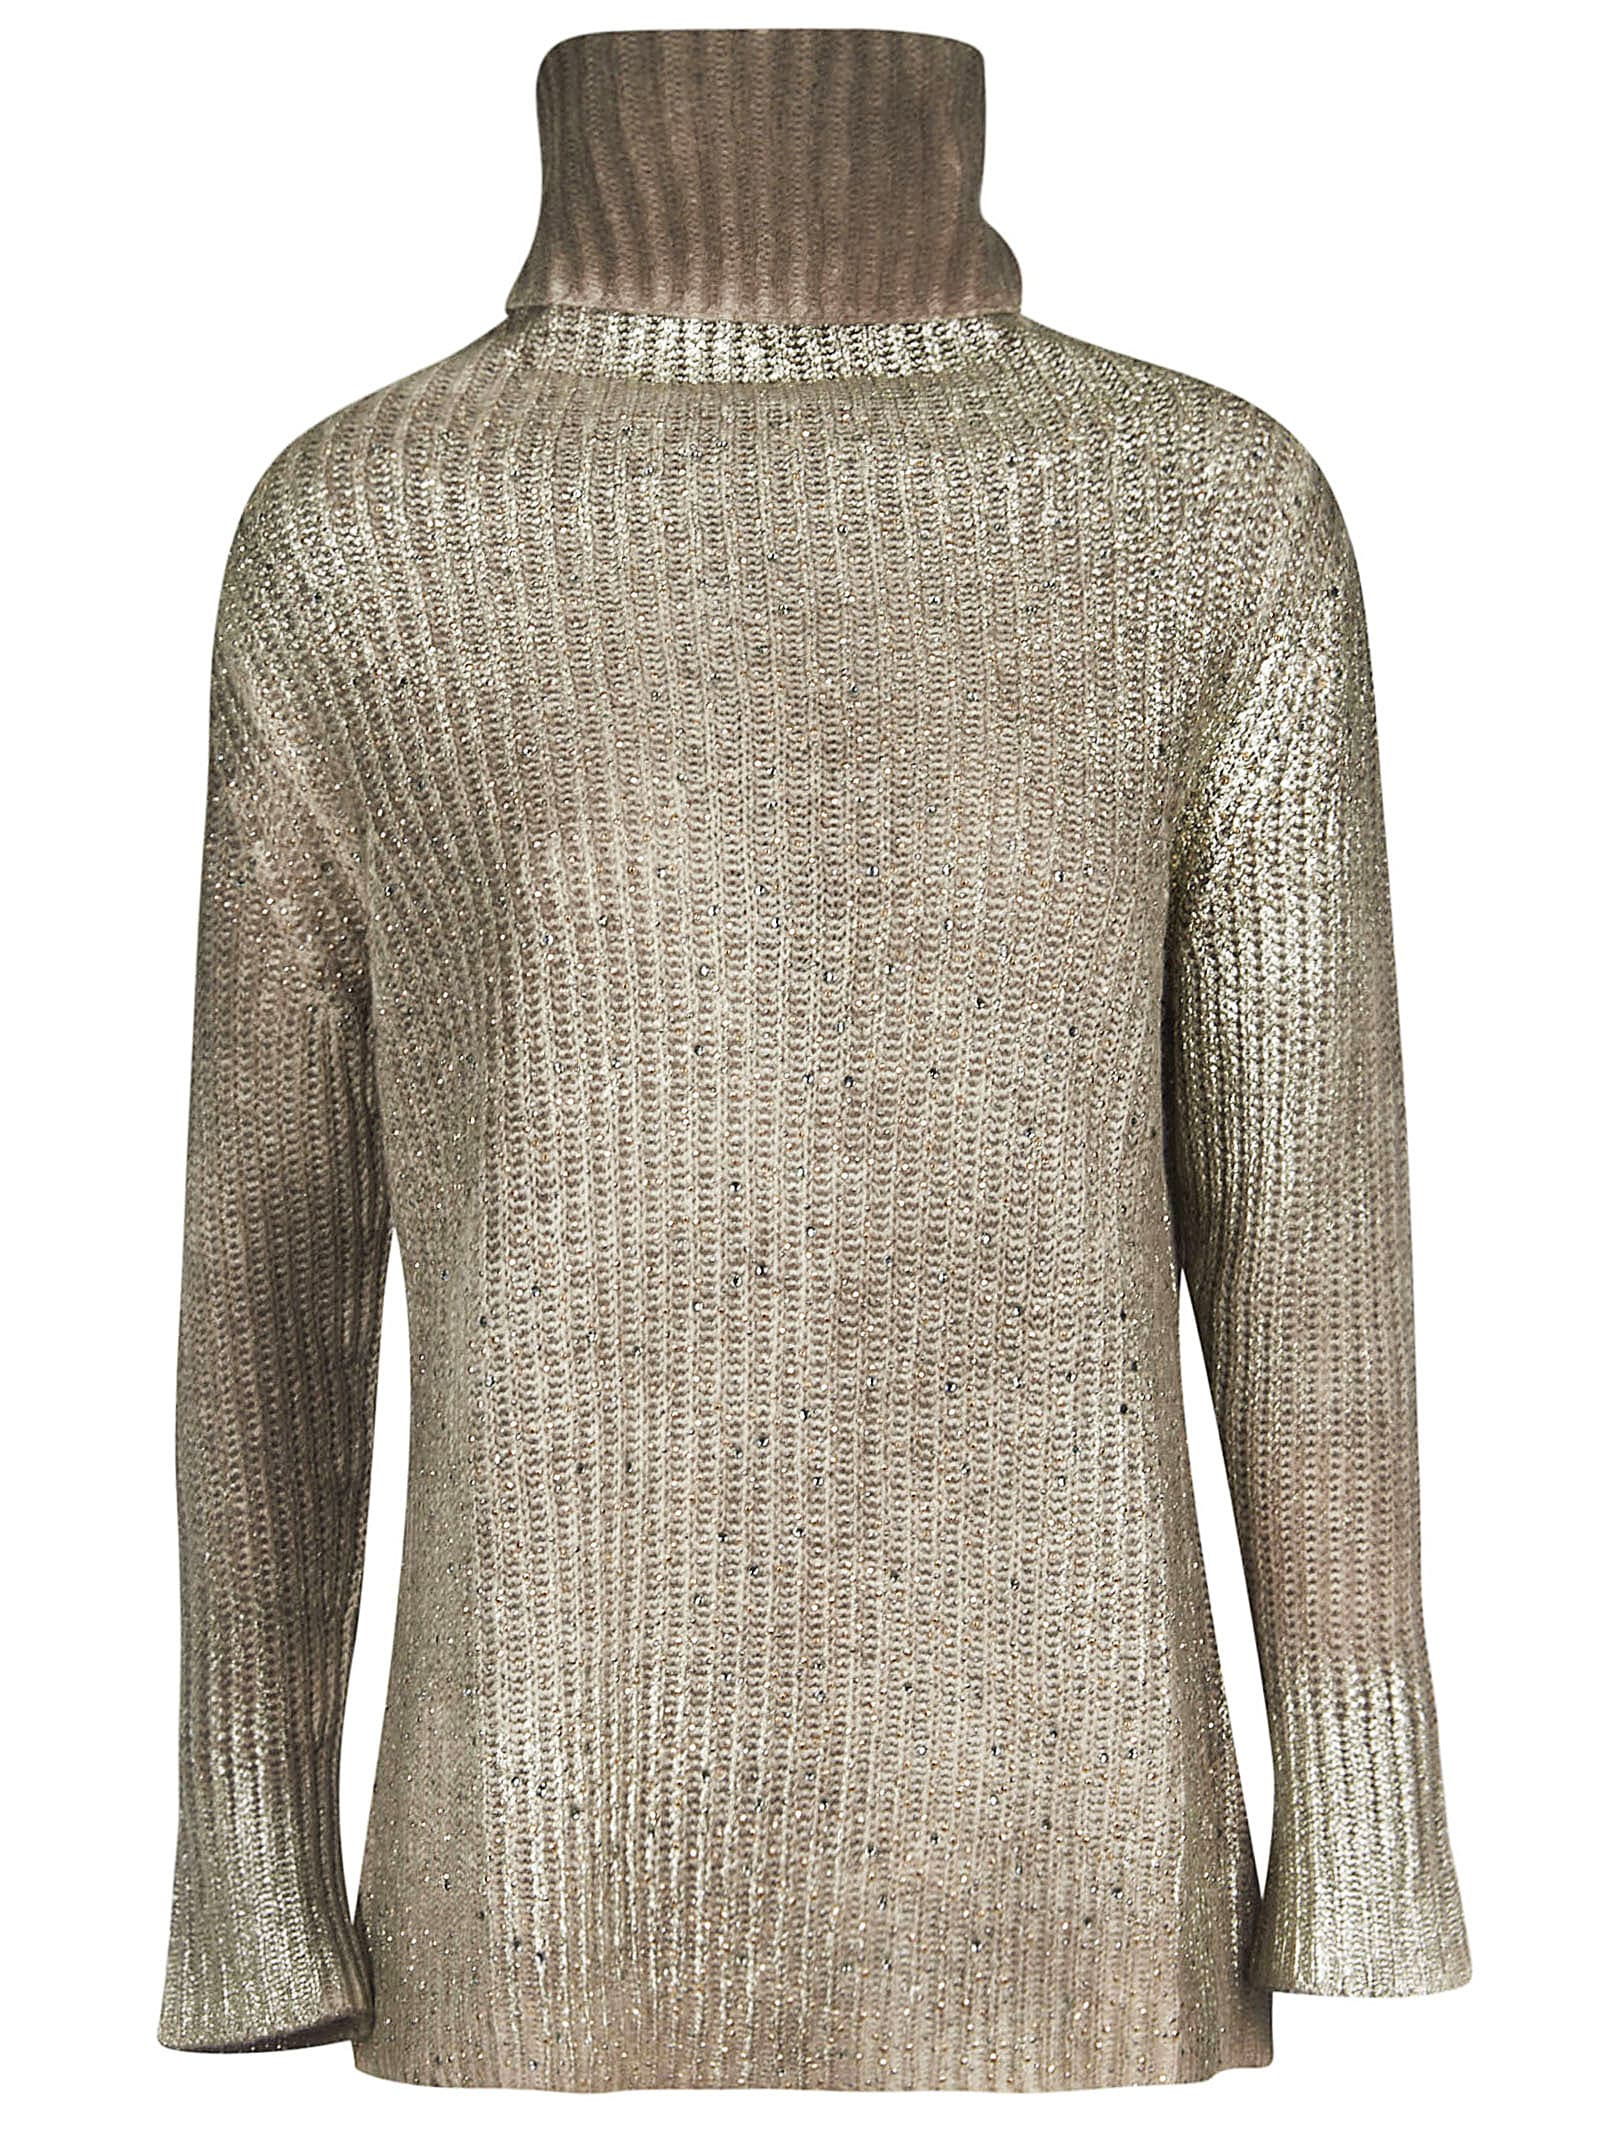 Avant Toi High Neck Sweater